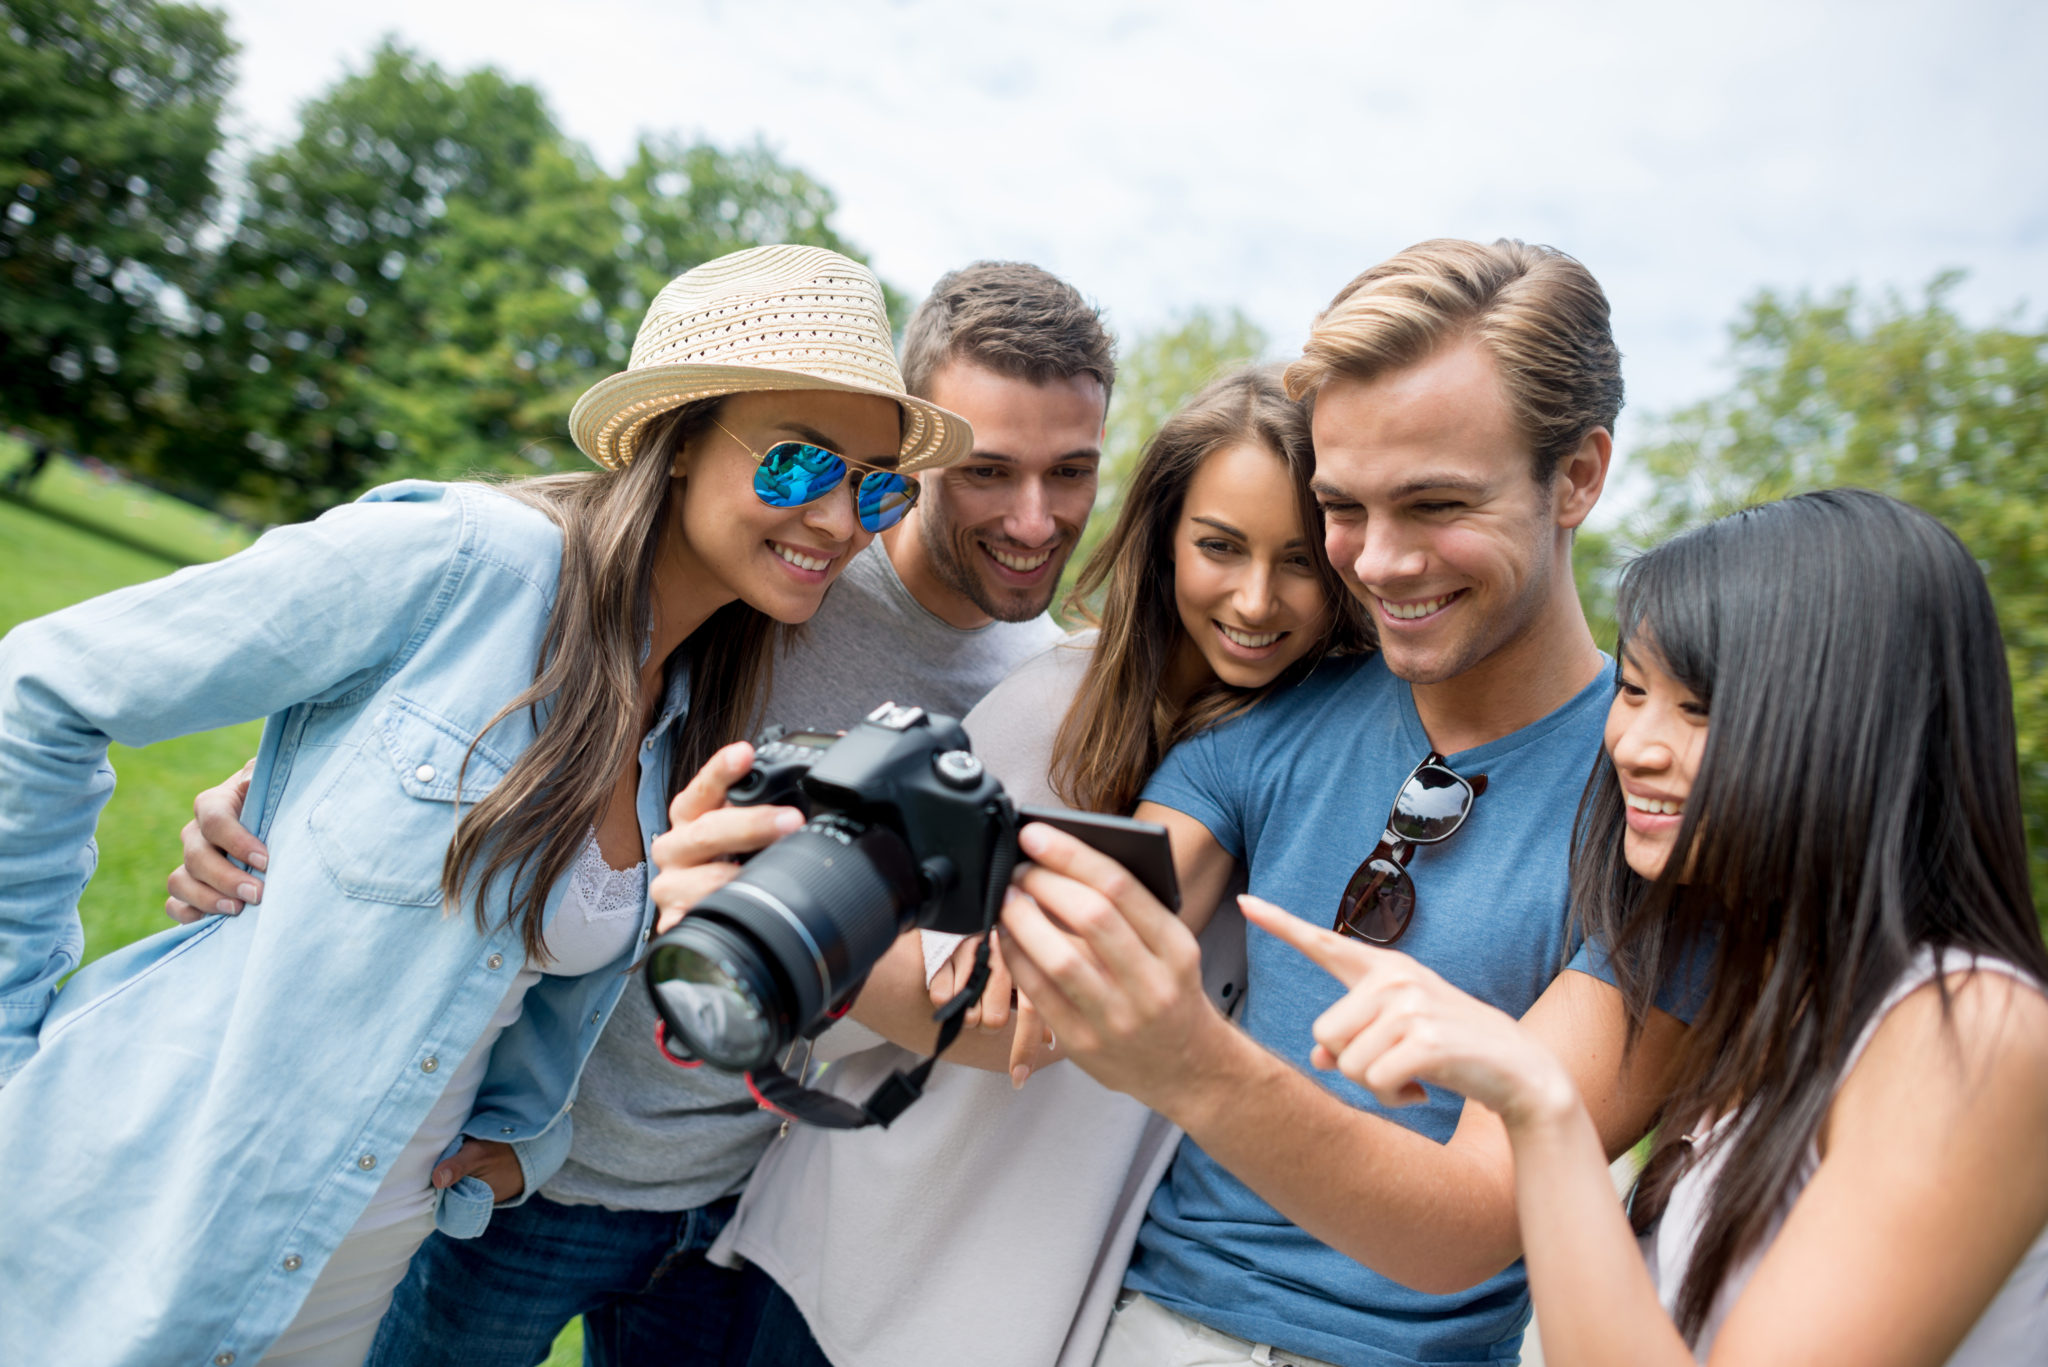 Happy group of friends taking pictures at the park and looking at the display of the camera